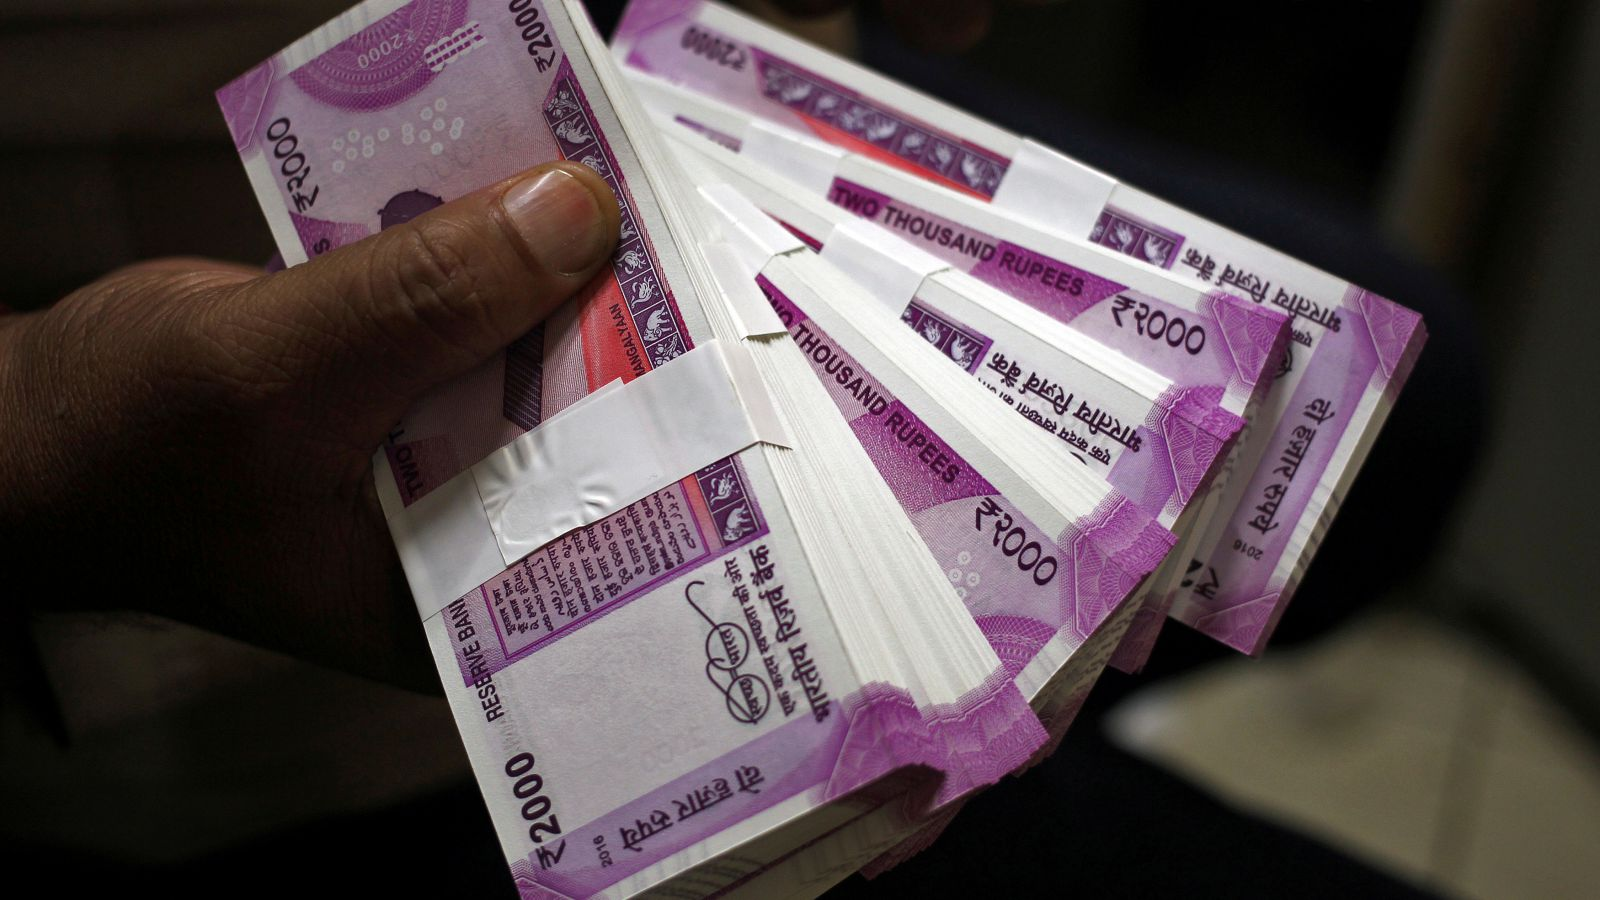 A cashier displays the new 2000 Indian rupee banknotes inside a bank in Jammu, November 15, 2016.